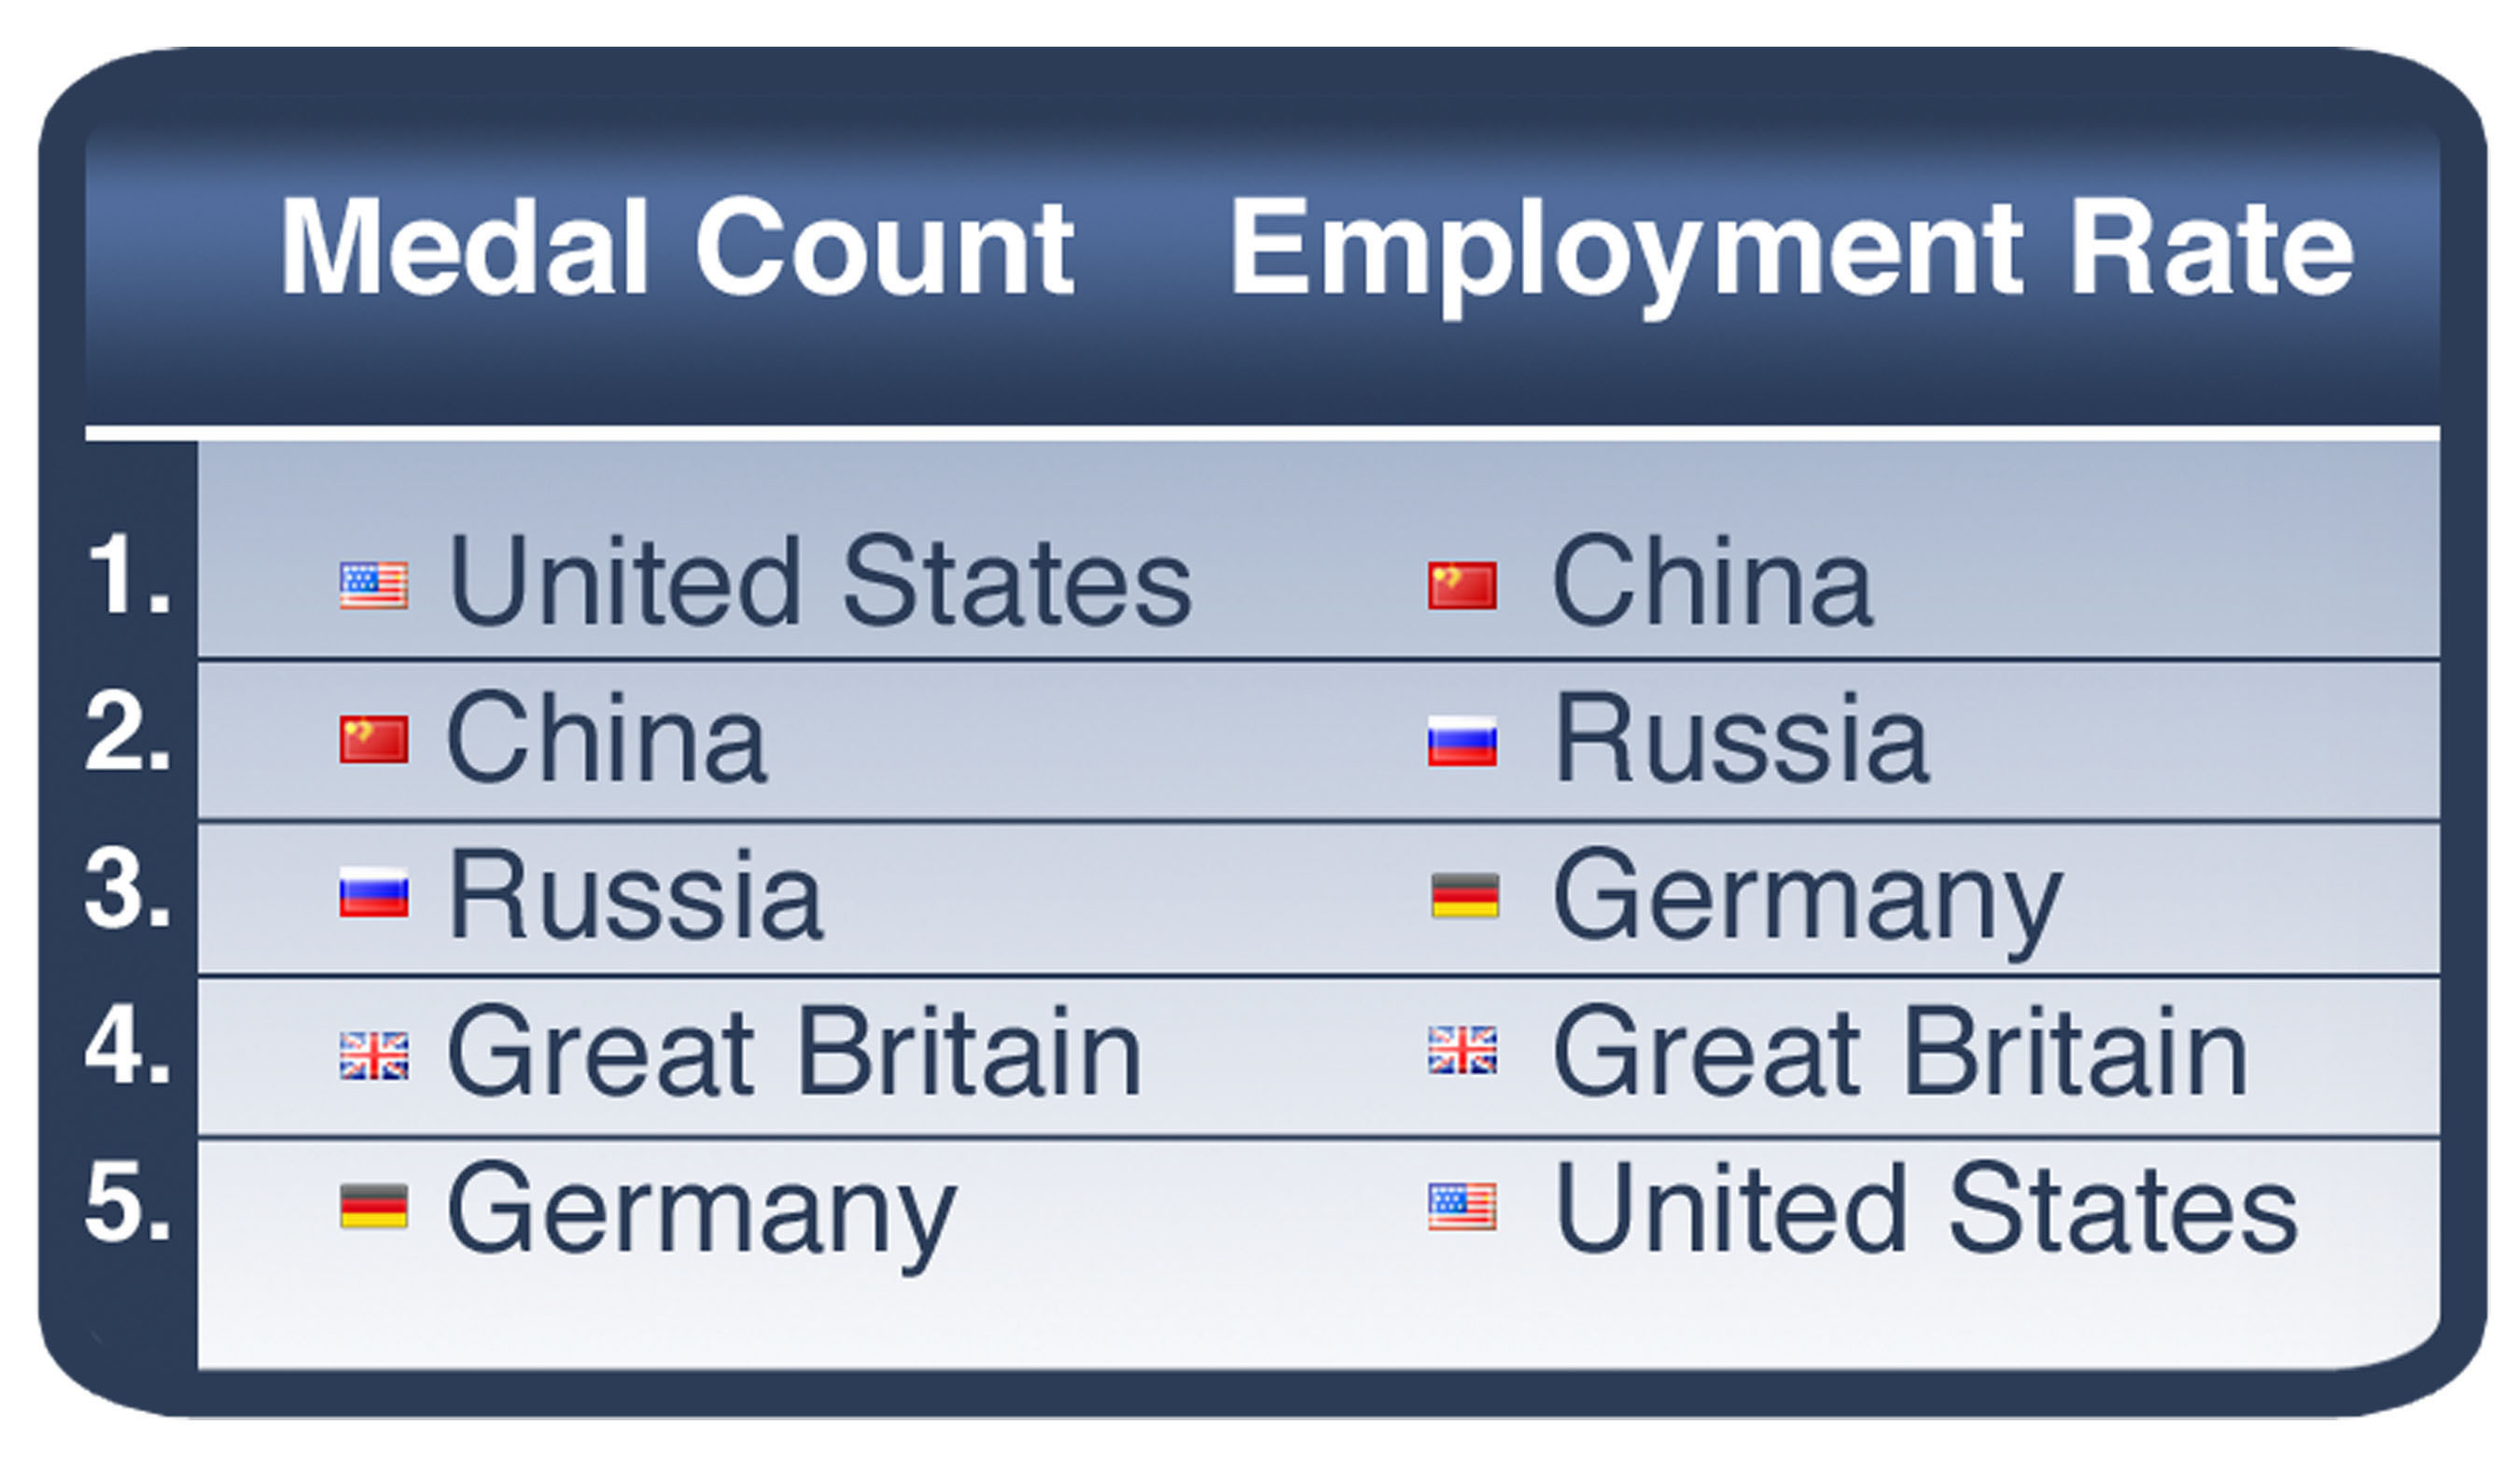 A RiseSmart analysis of unemployment data for the top five medal winners shows that the U.S. lags behind its ...